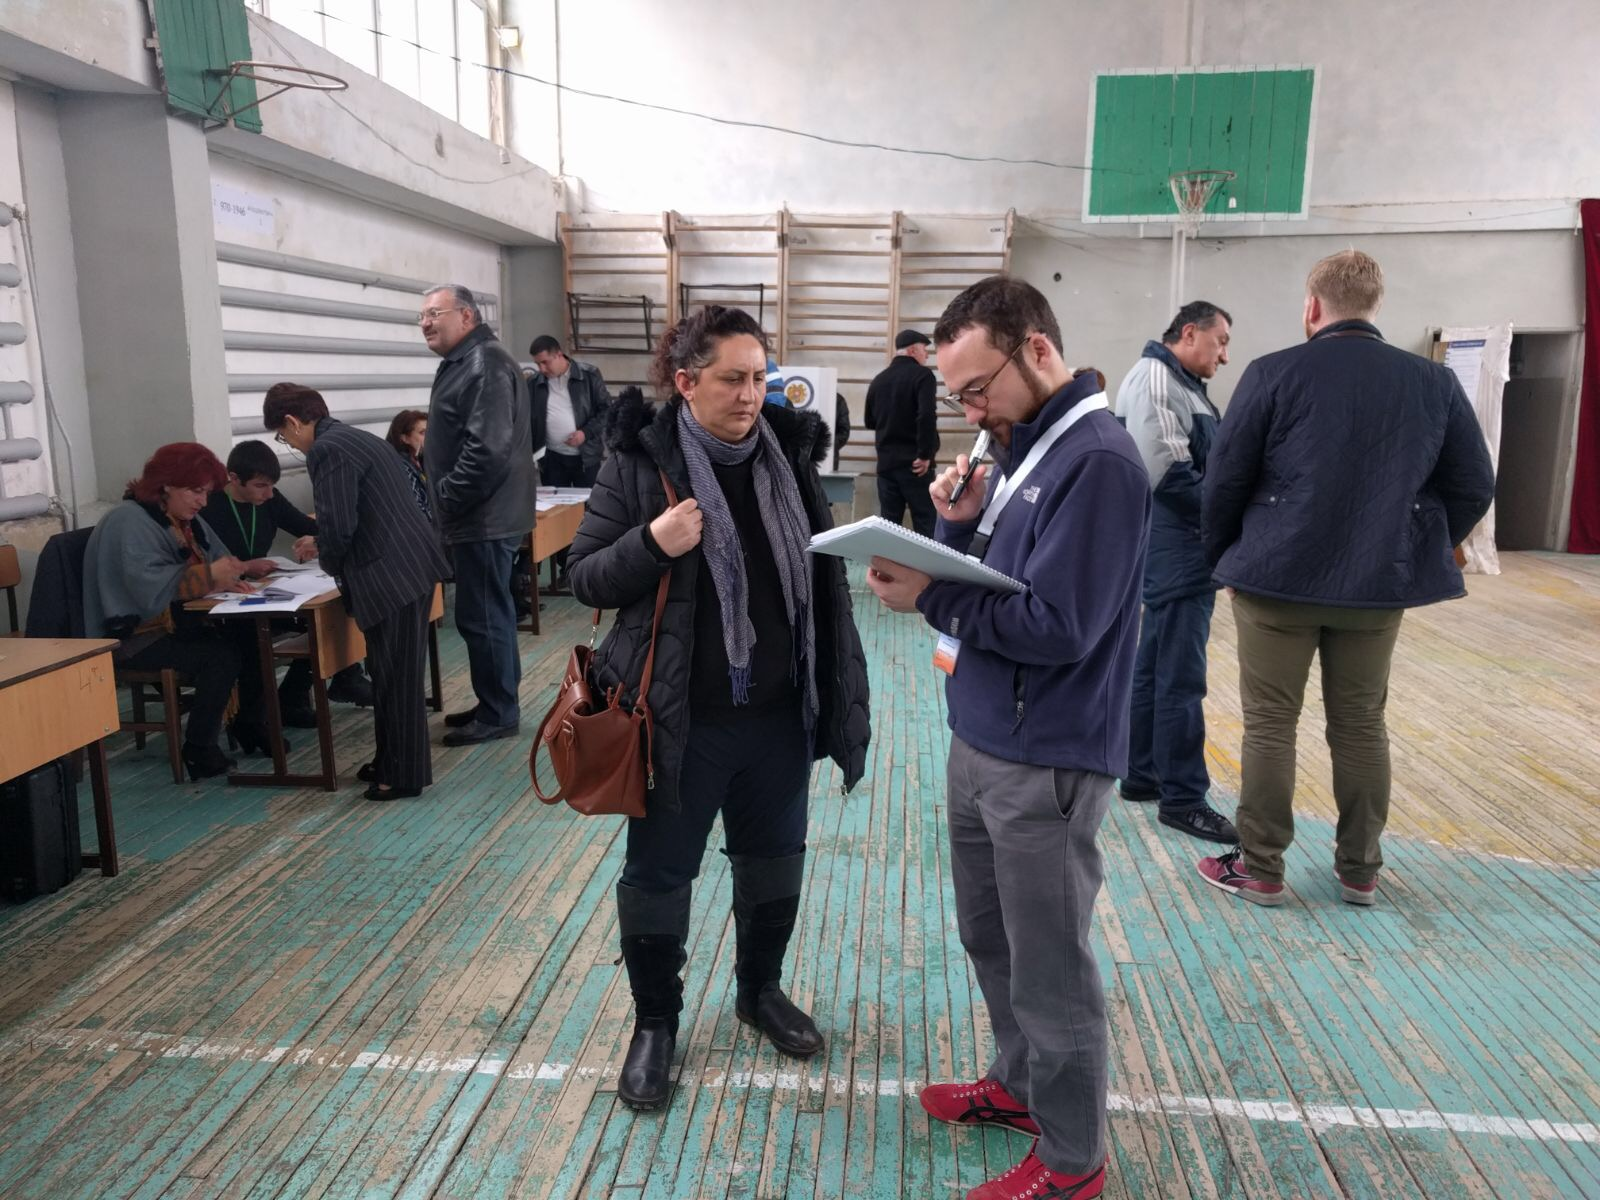 Helsinki Commission policy advisor Everett Price observes elections in Armenia | April 2017